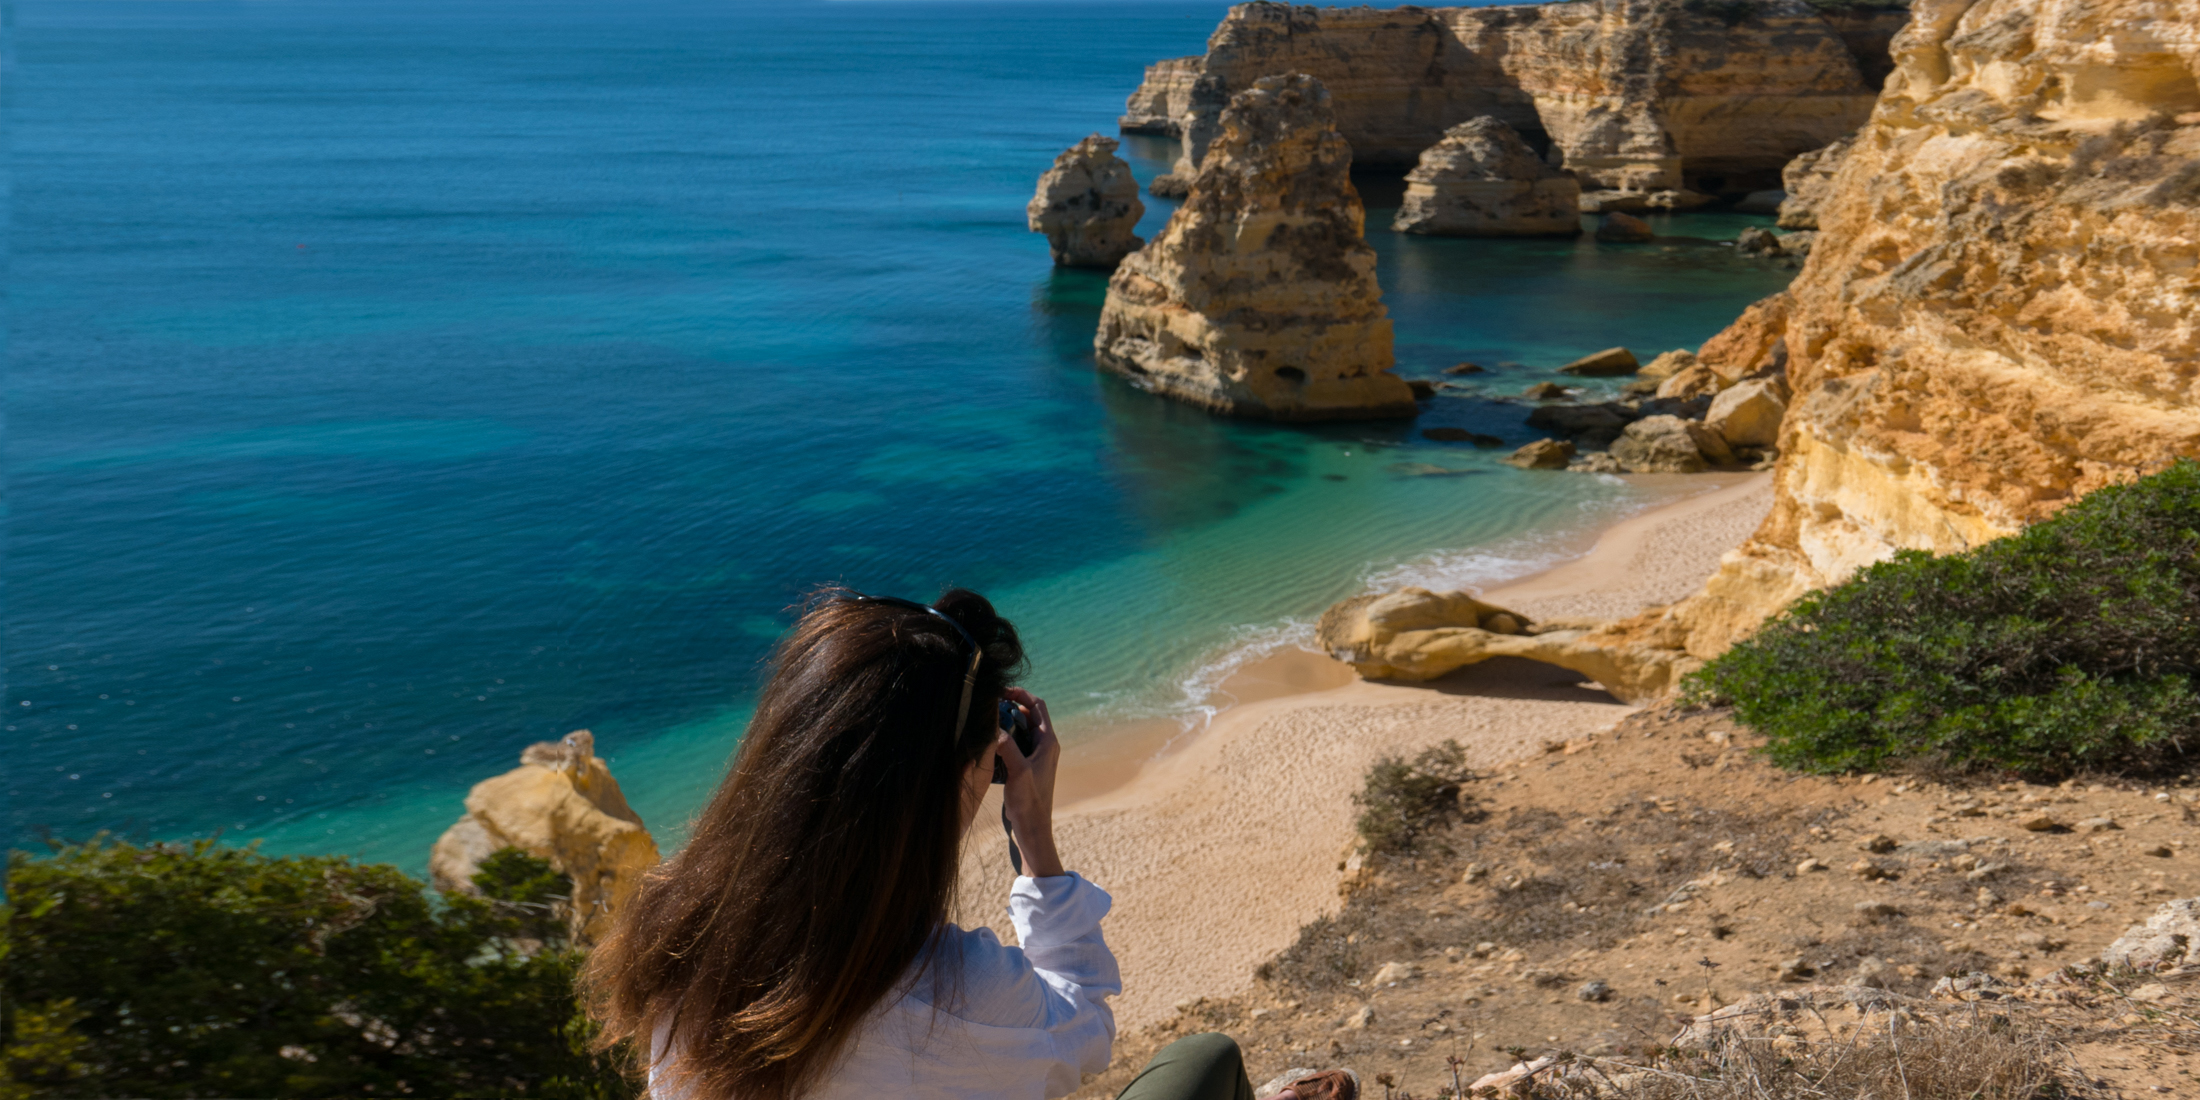 Photo workshops in Lisbon and the Algarve- Algarve: above the Benagil caves, the Benagil coast